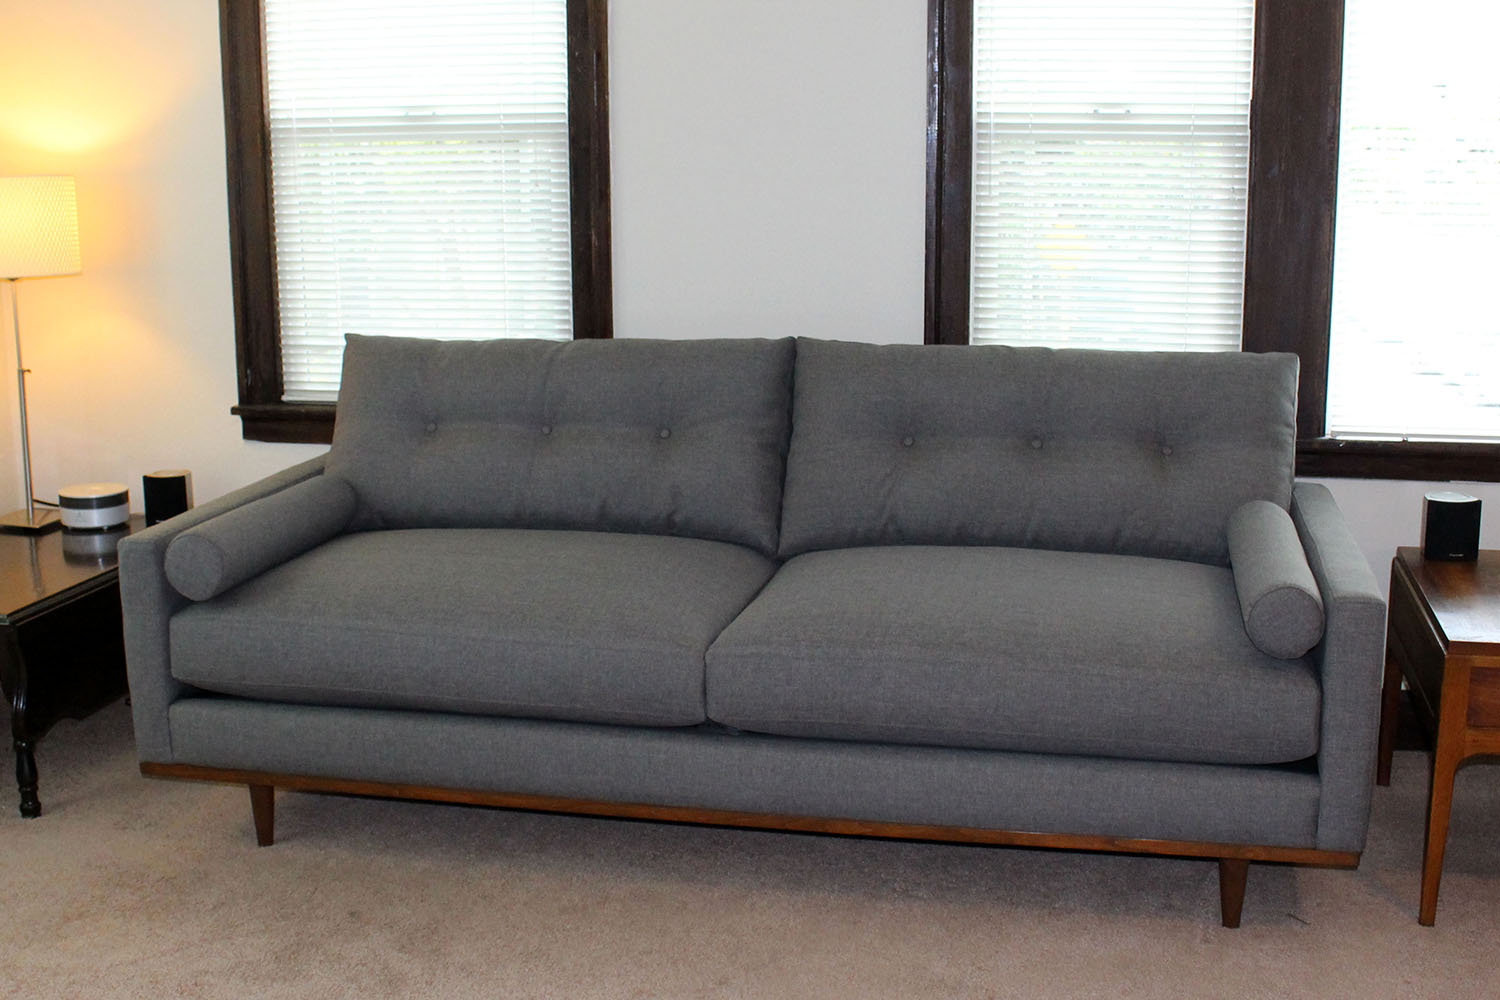 Jessie style sofa with buttons wood base furniture envy